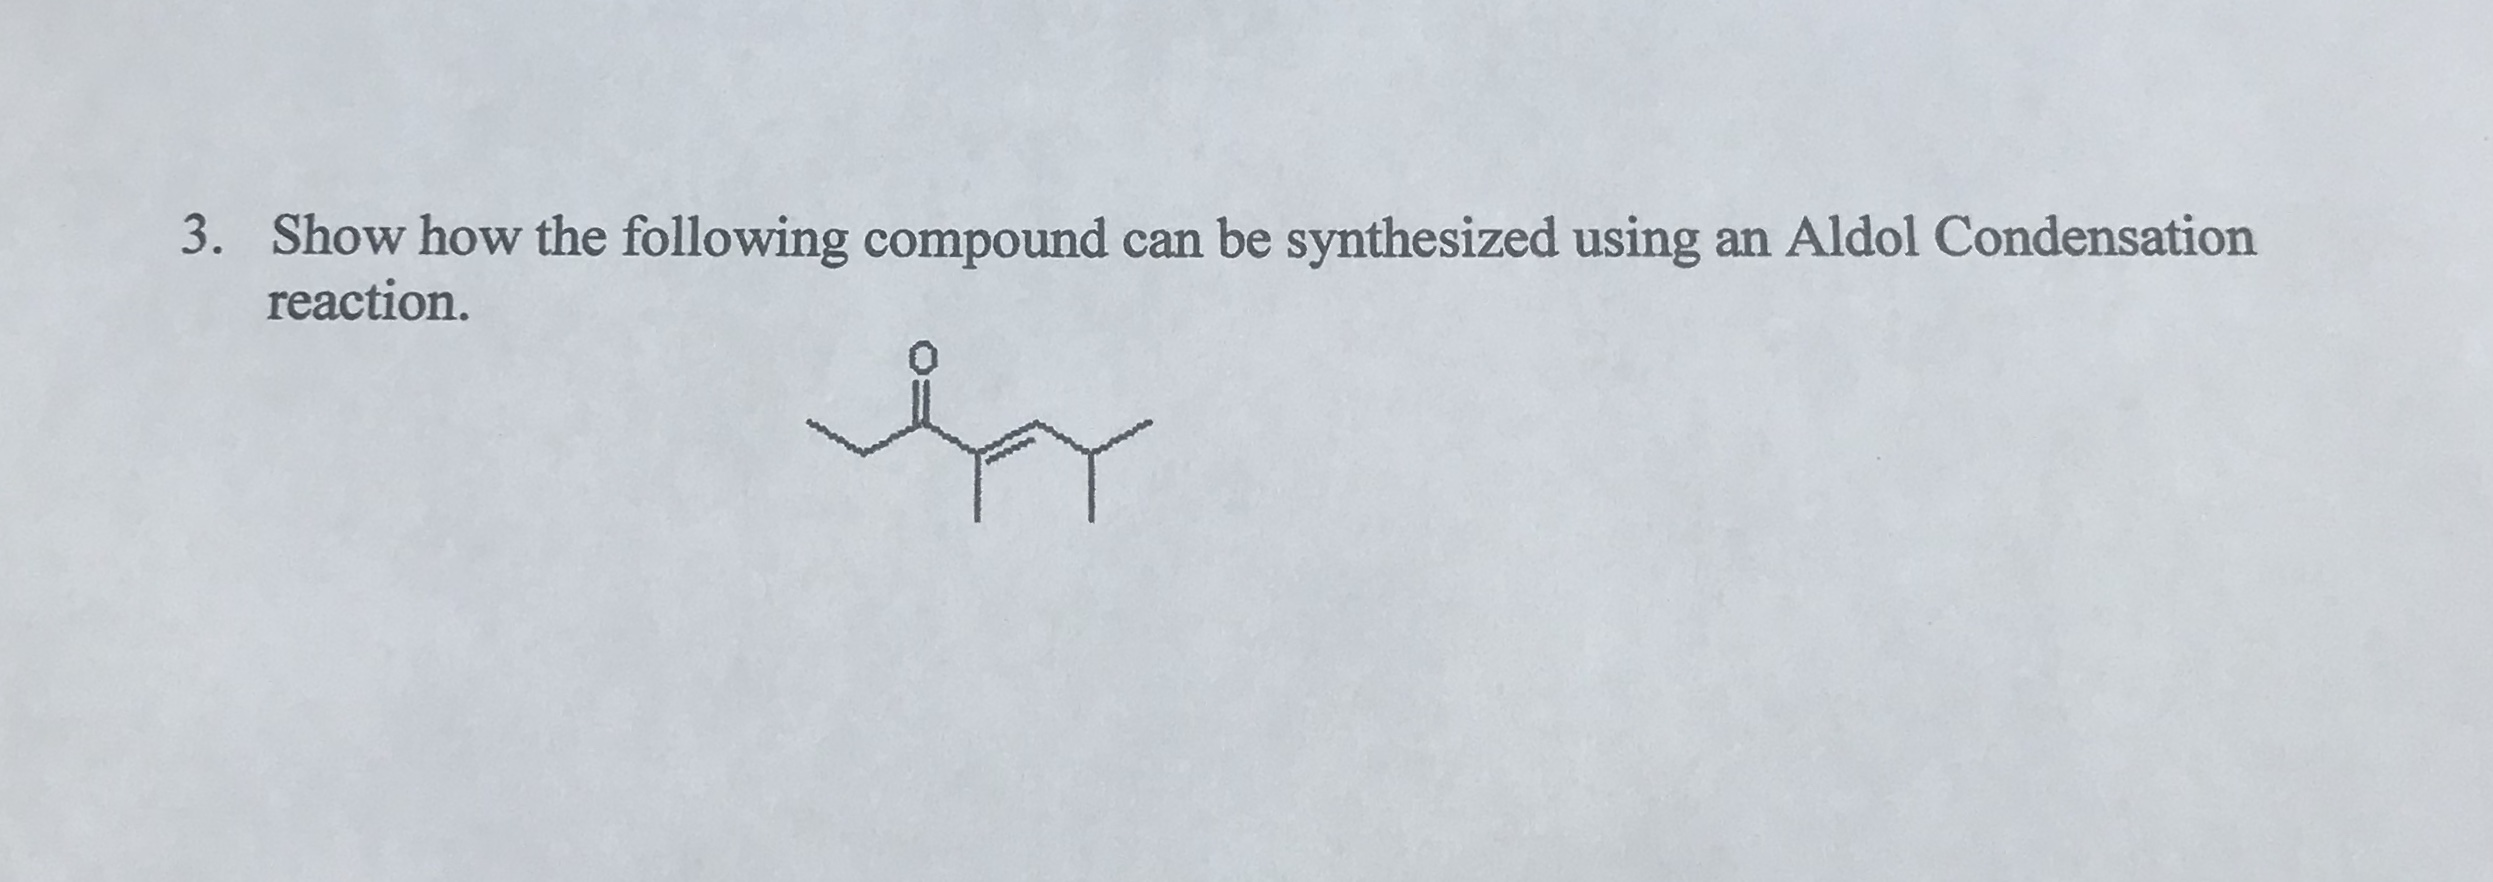 3. Show how the following compound can be synthesized using an Aldol Condensation reaction.